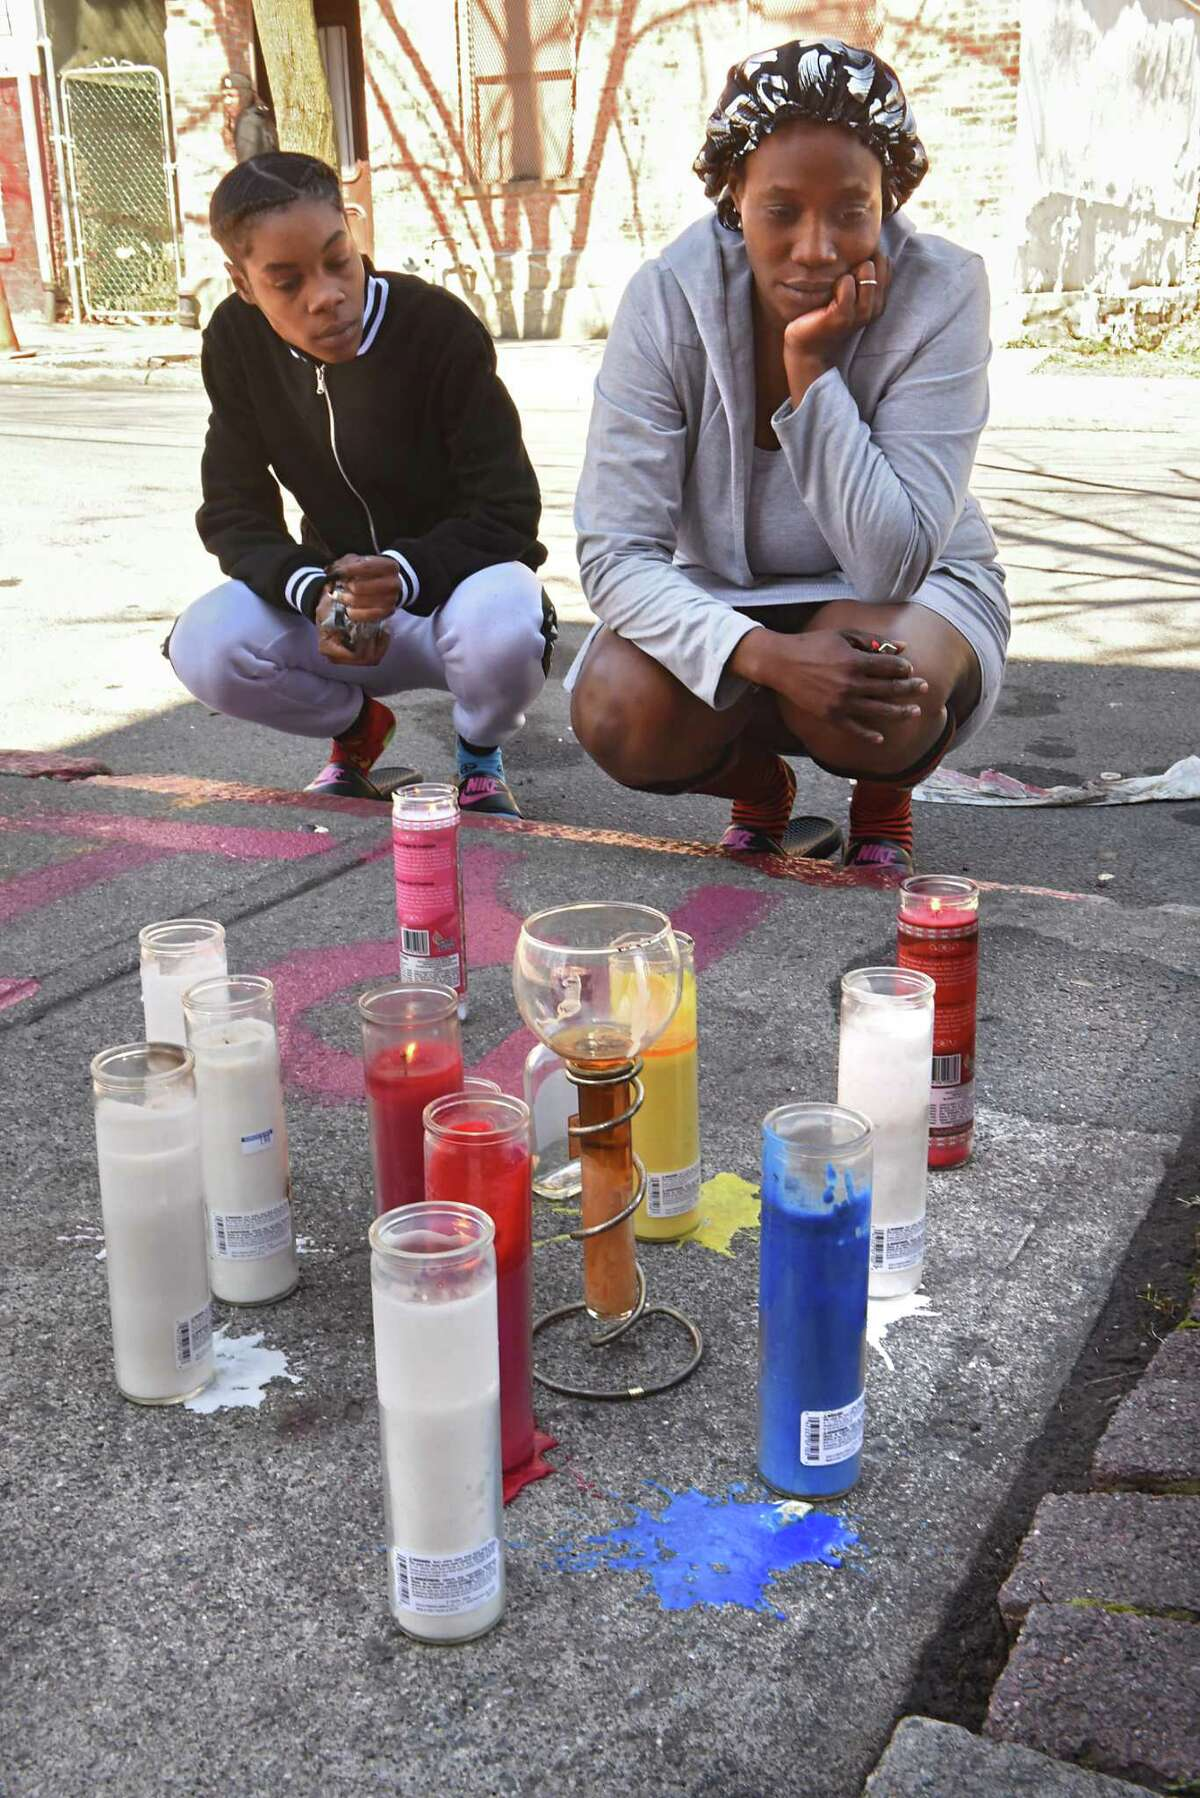 Keessence Coles, left, and Patricia McMillian, both of Albany, take a moment of silence after bringing flowers and lighting a candle they also brought for their friend's memorial on Clinton St. near Second Ave. on Monday, April 23, 2018 in Albany, N.Y.Their friend was identified by police as 38-year-old Damien L. Sanders, who was shot multiple times in this location on Sunday afternoon. (Lori Van Buren/Times Union)